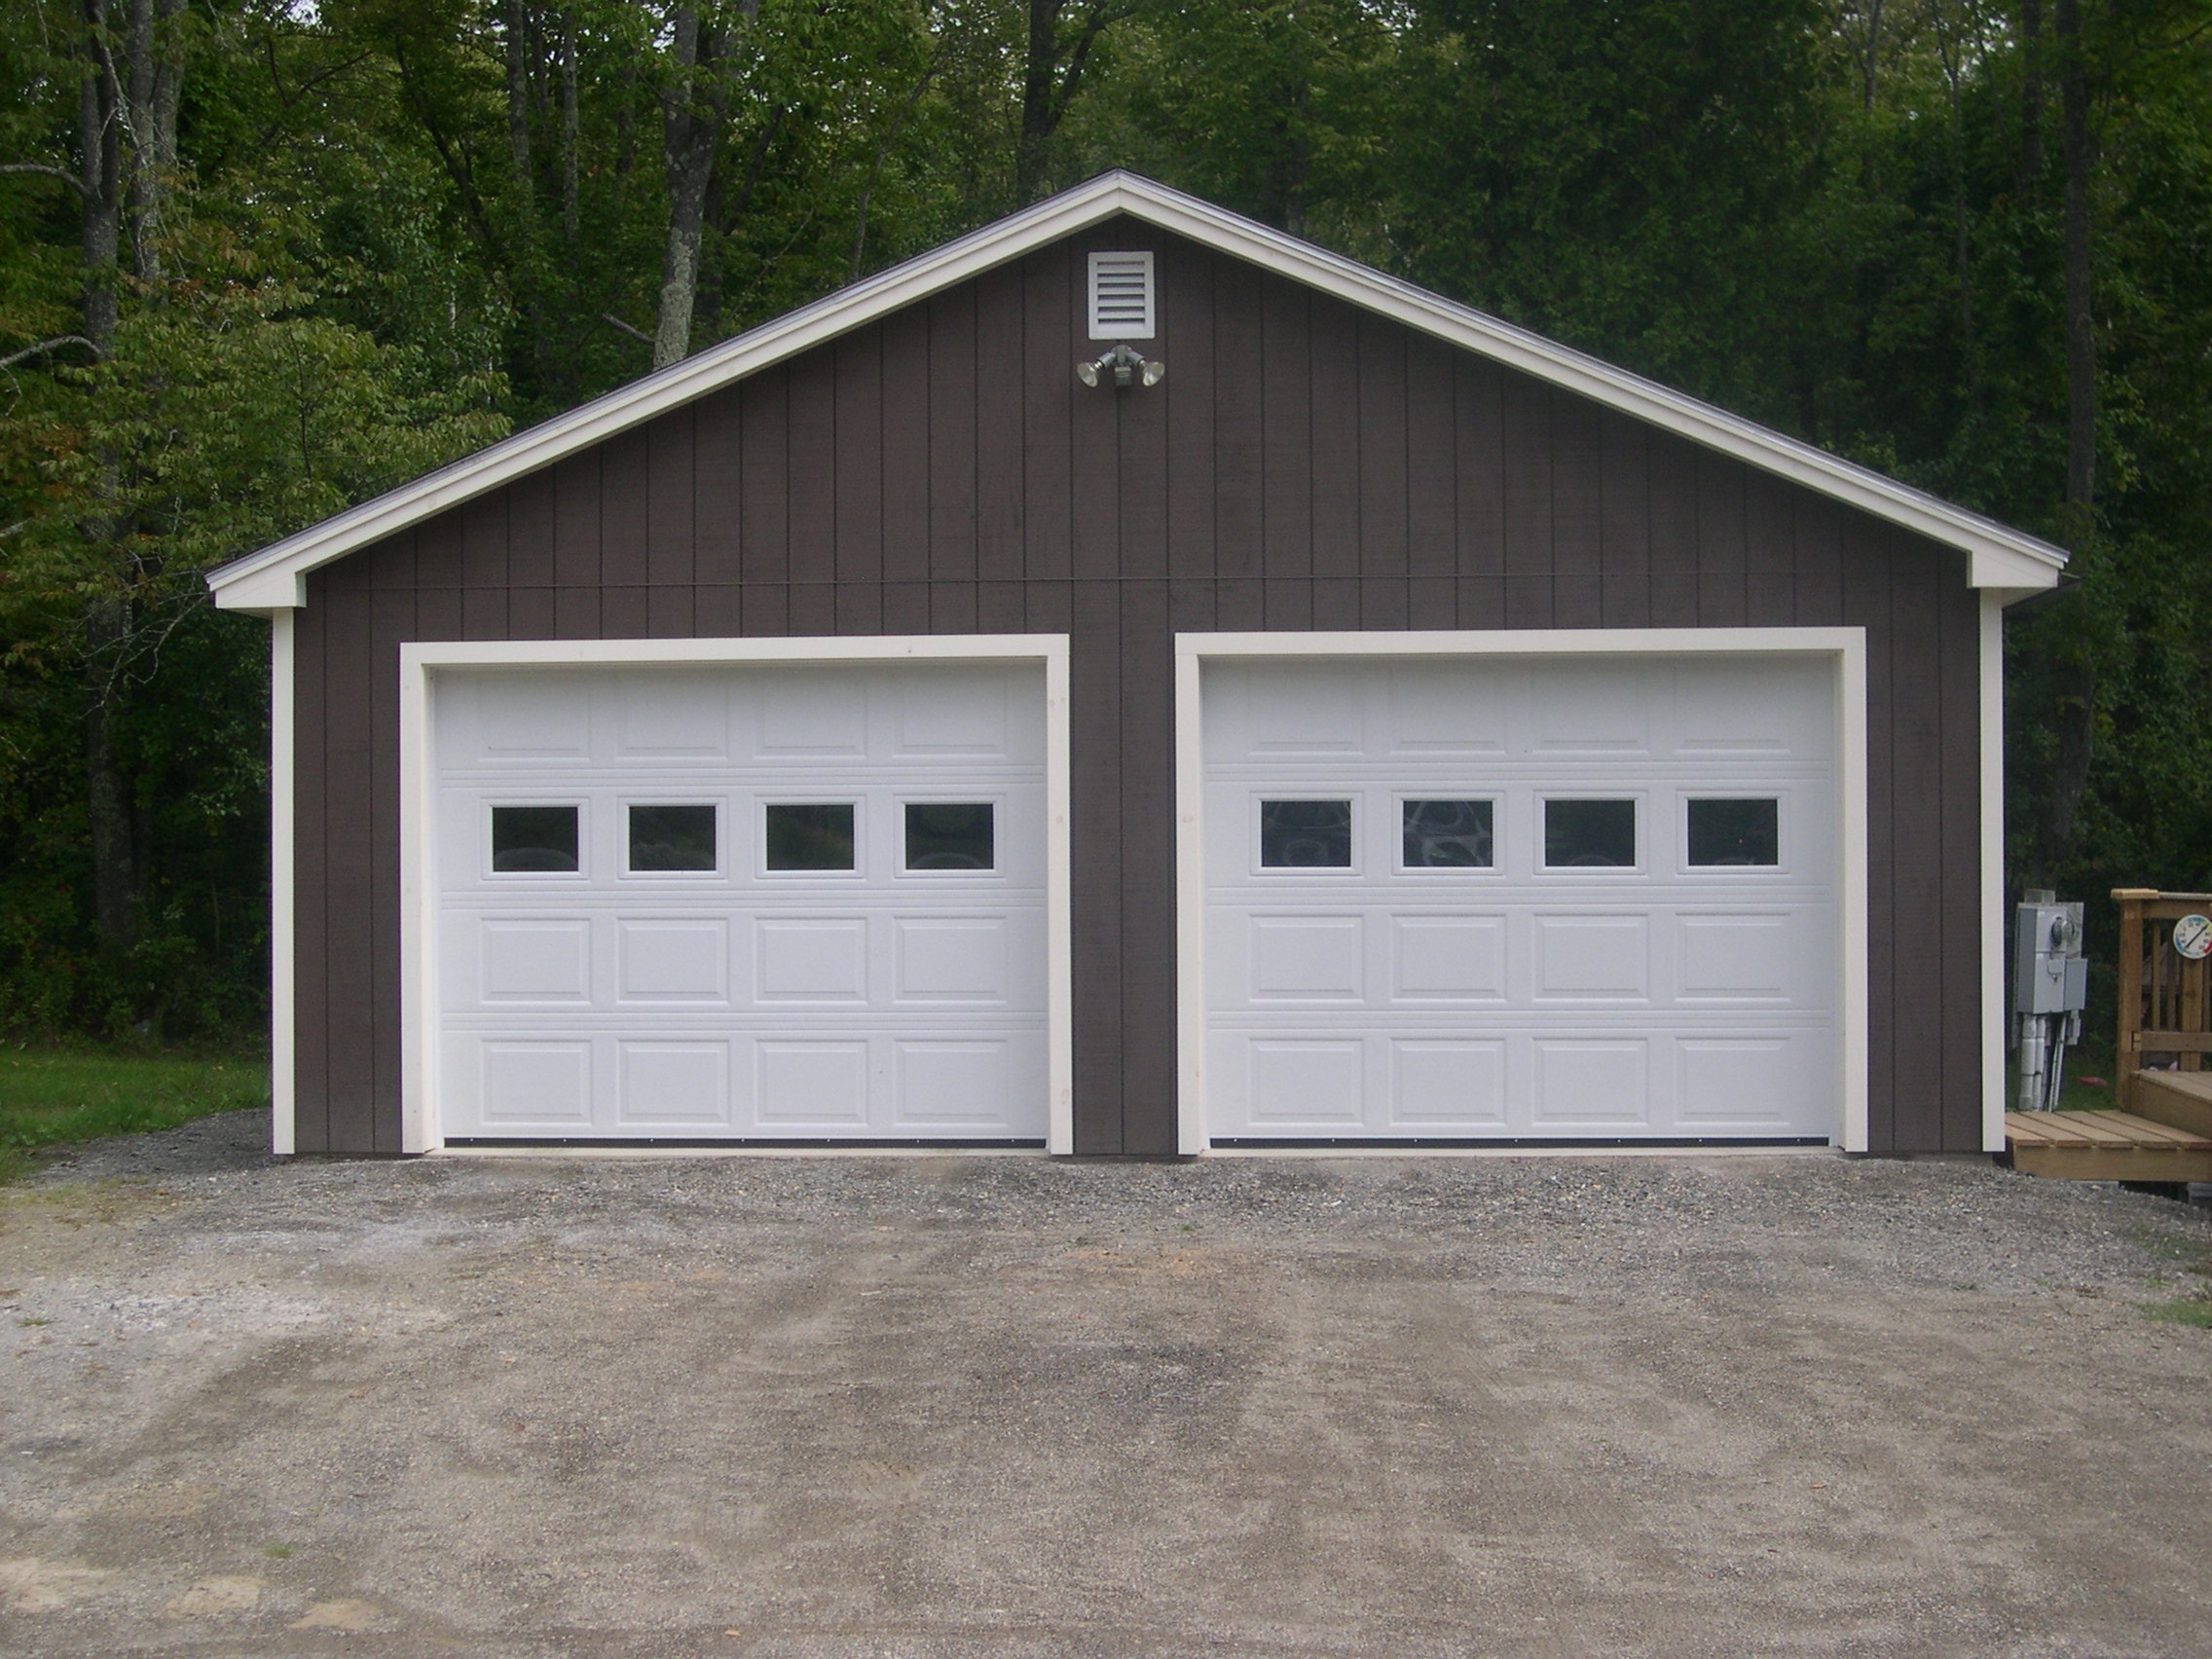 How much to build a garage on side of the house uk for 2 car garage design ideas